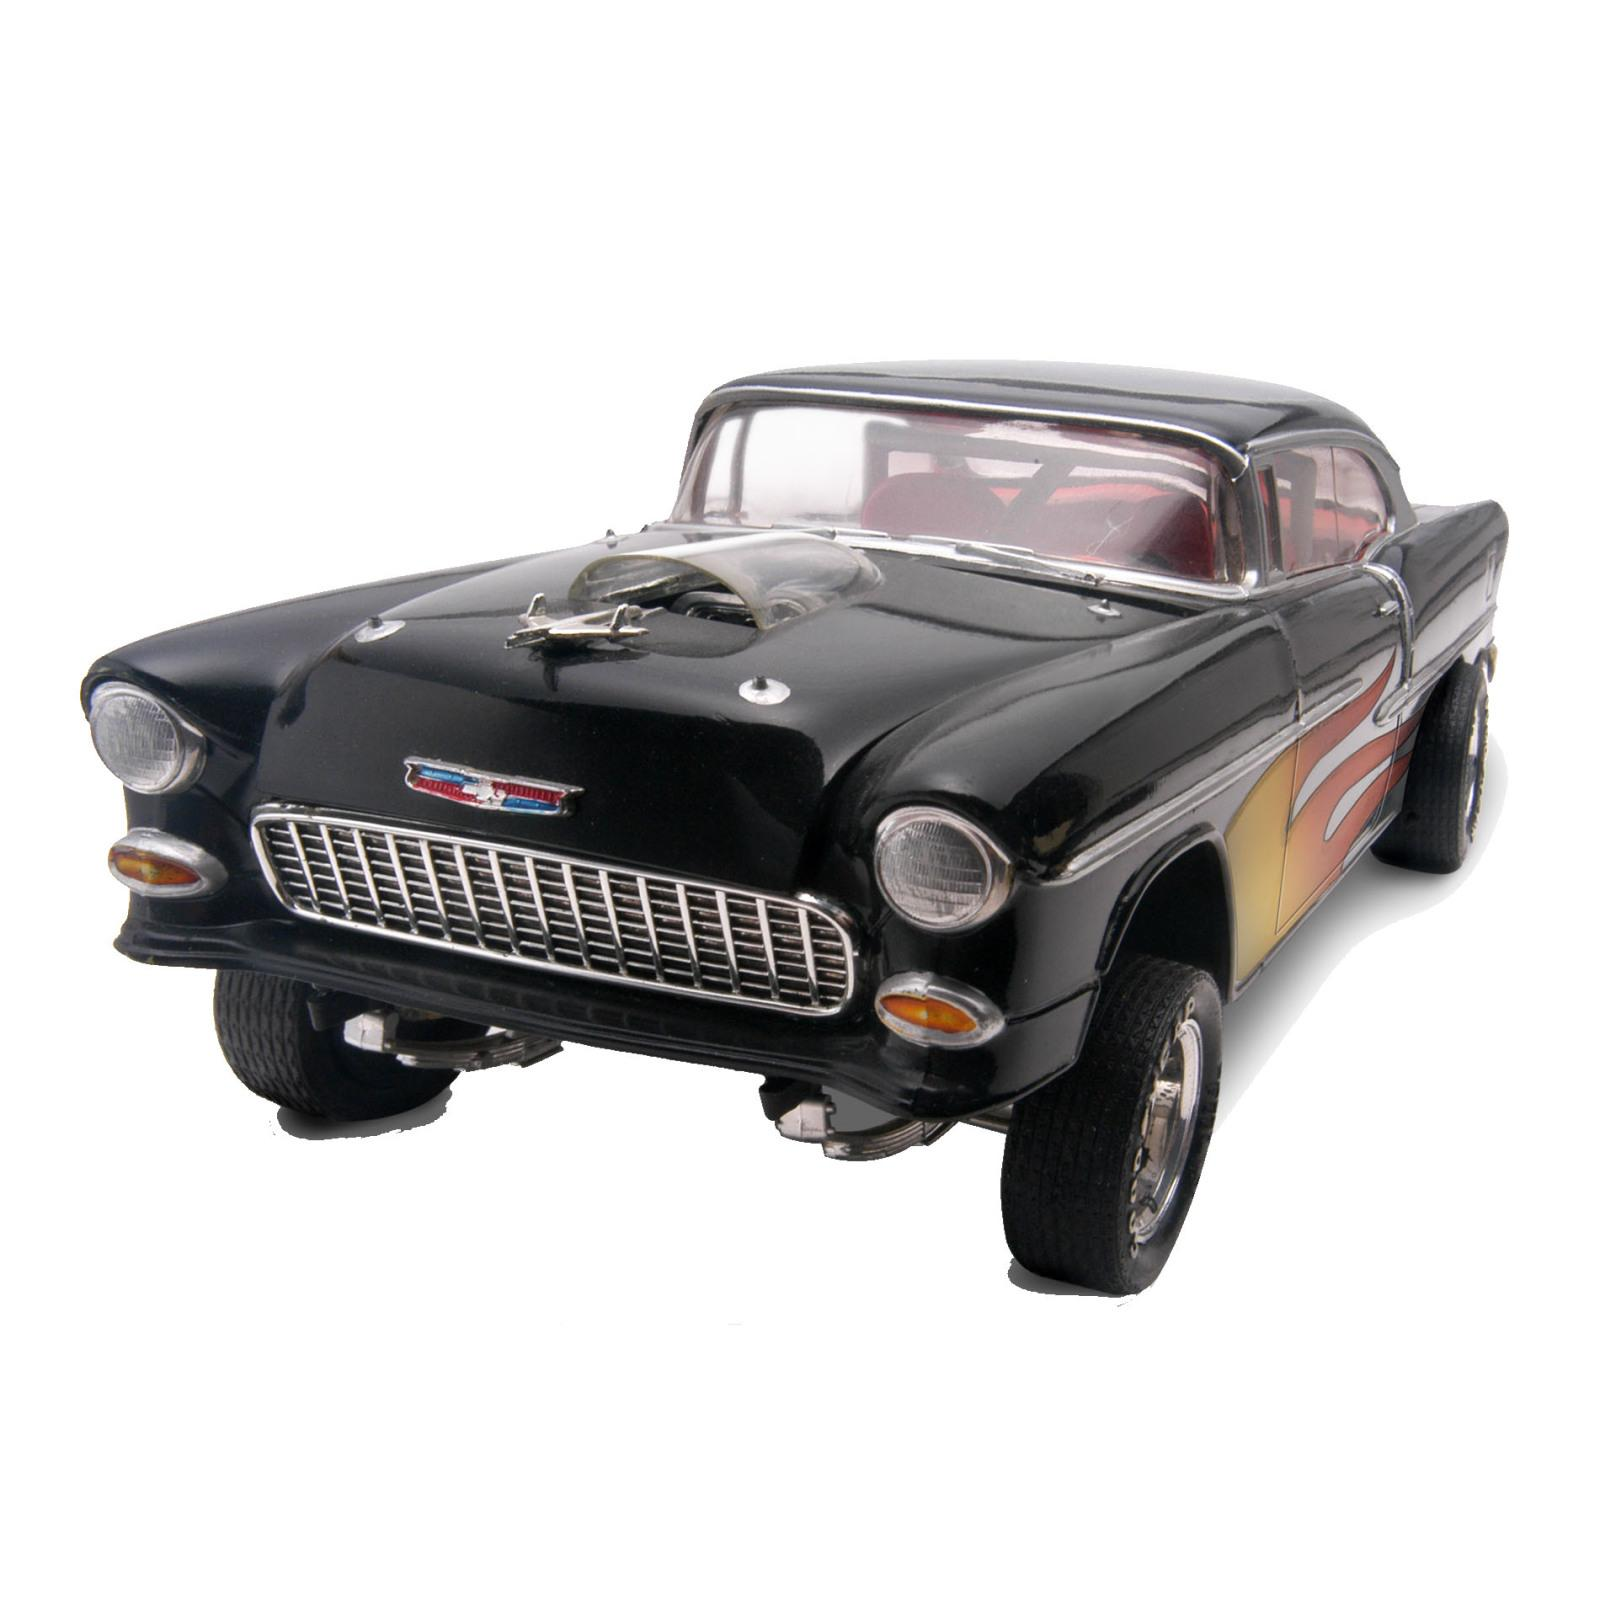 Revell 1:24 Scale 1955 Chevy Street Machine Plastic Model Kit - Thumbnail 0